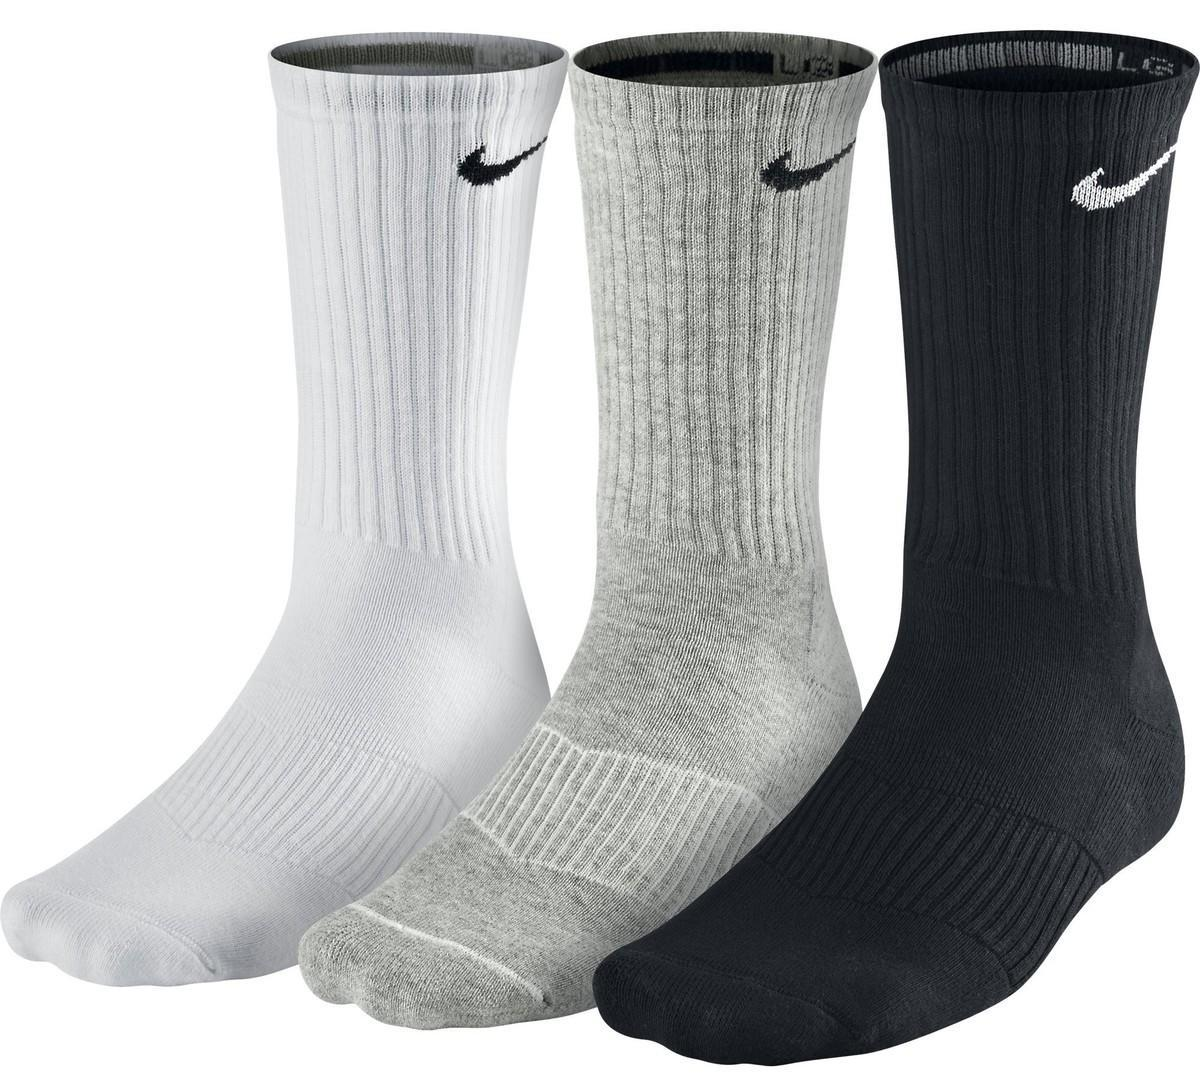 Nike Performance Cotton Cushioned Crew 3-pack/black/white/grey